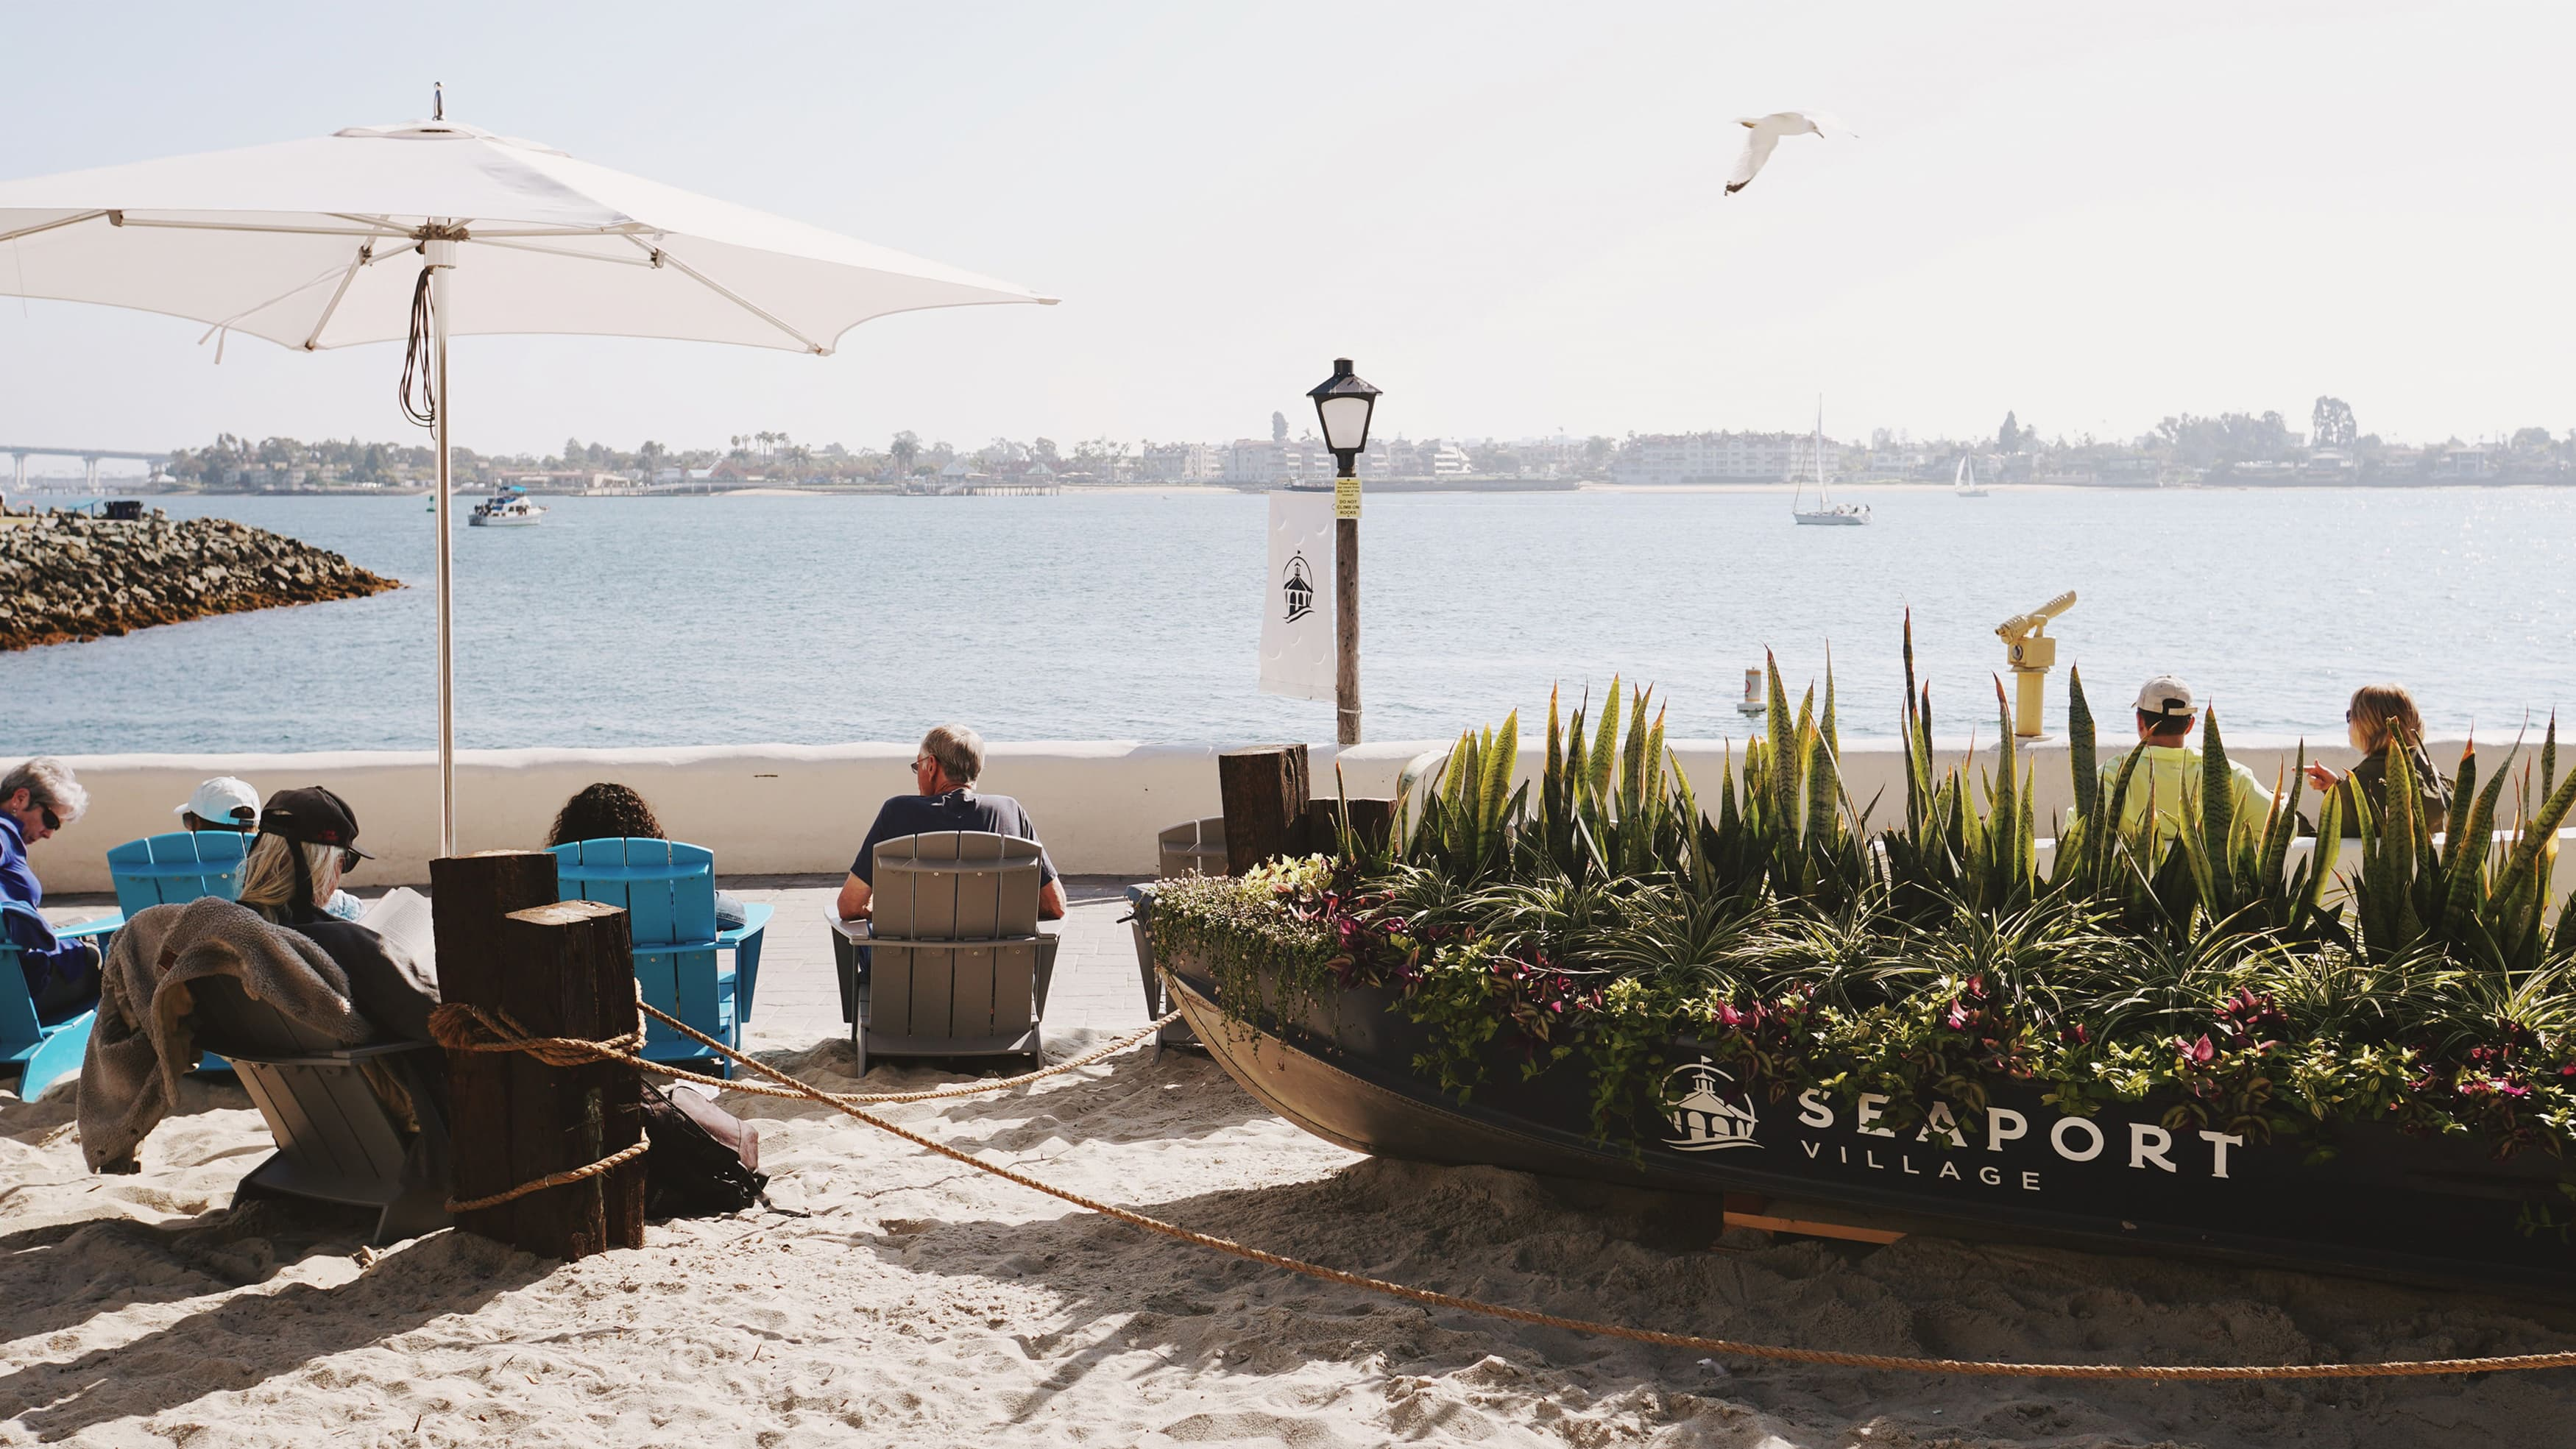 Man overlooks the Port of San Diego from the Seaport Village boardwalk.